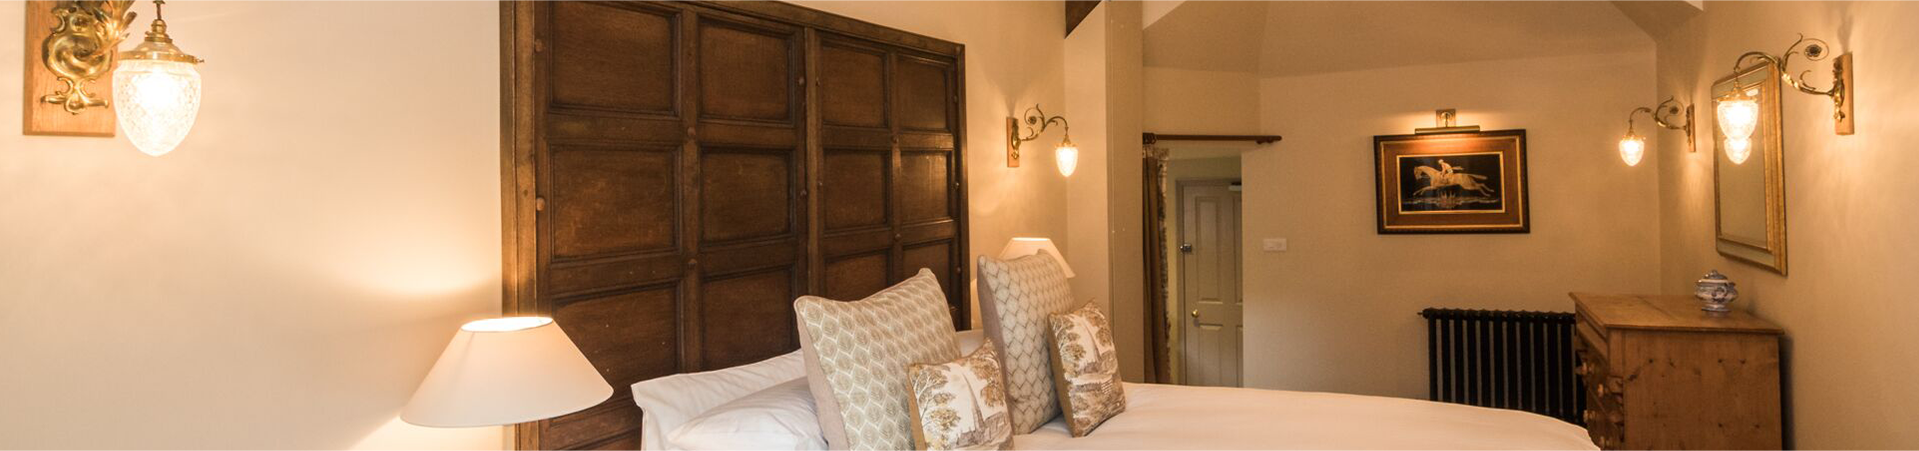 Lovely rustic country hotel room